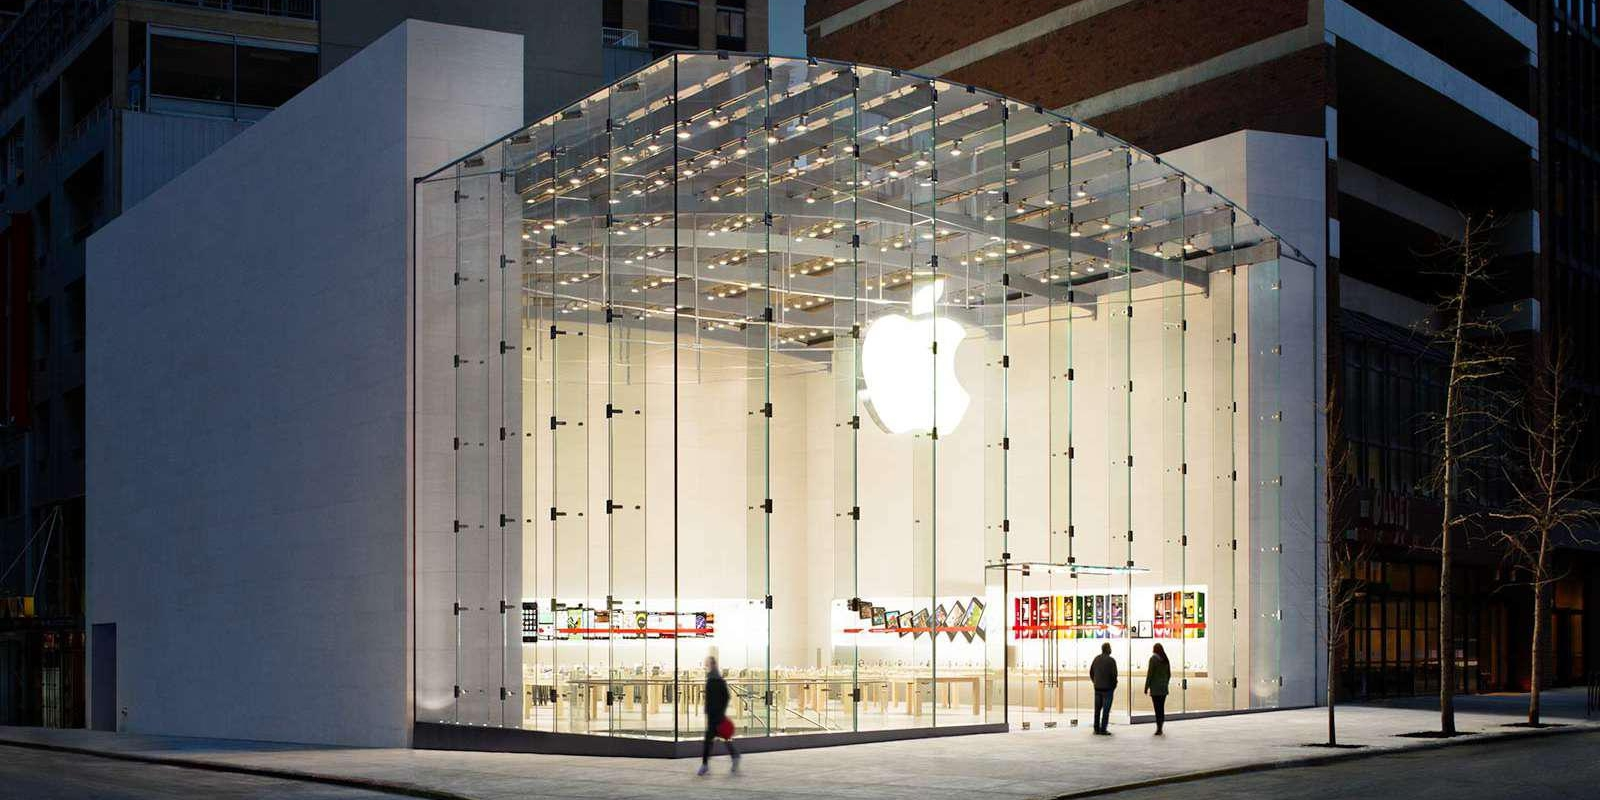 Sforum - Latest information technology applestore Apple is preparing to open a store at Jewel complex - Singapore